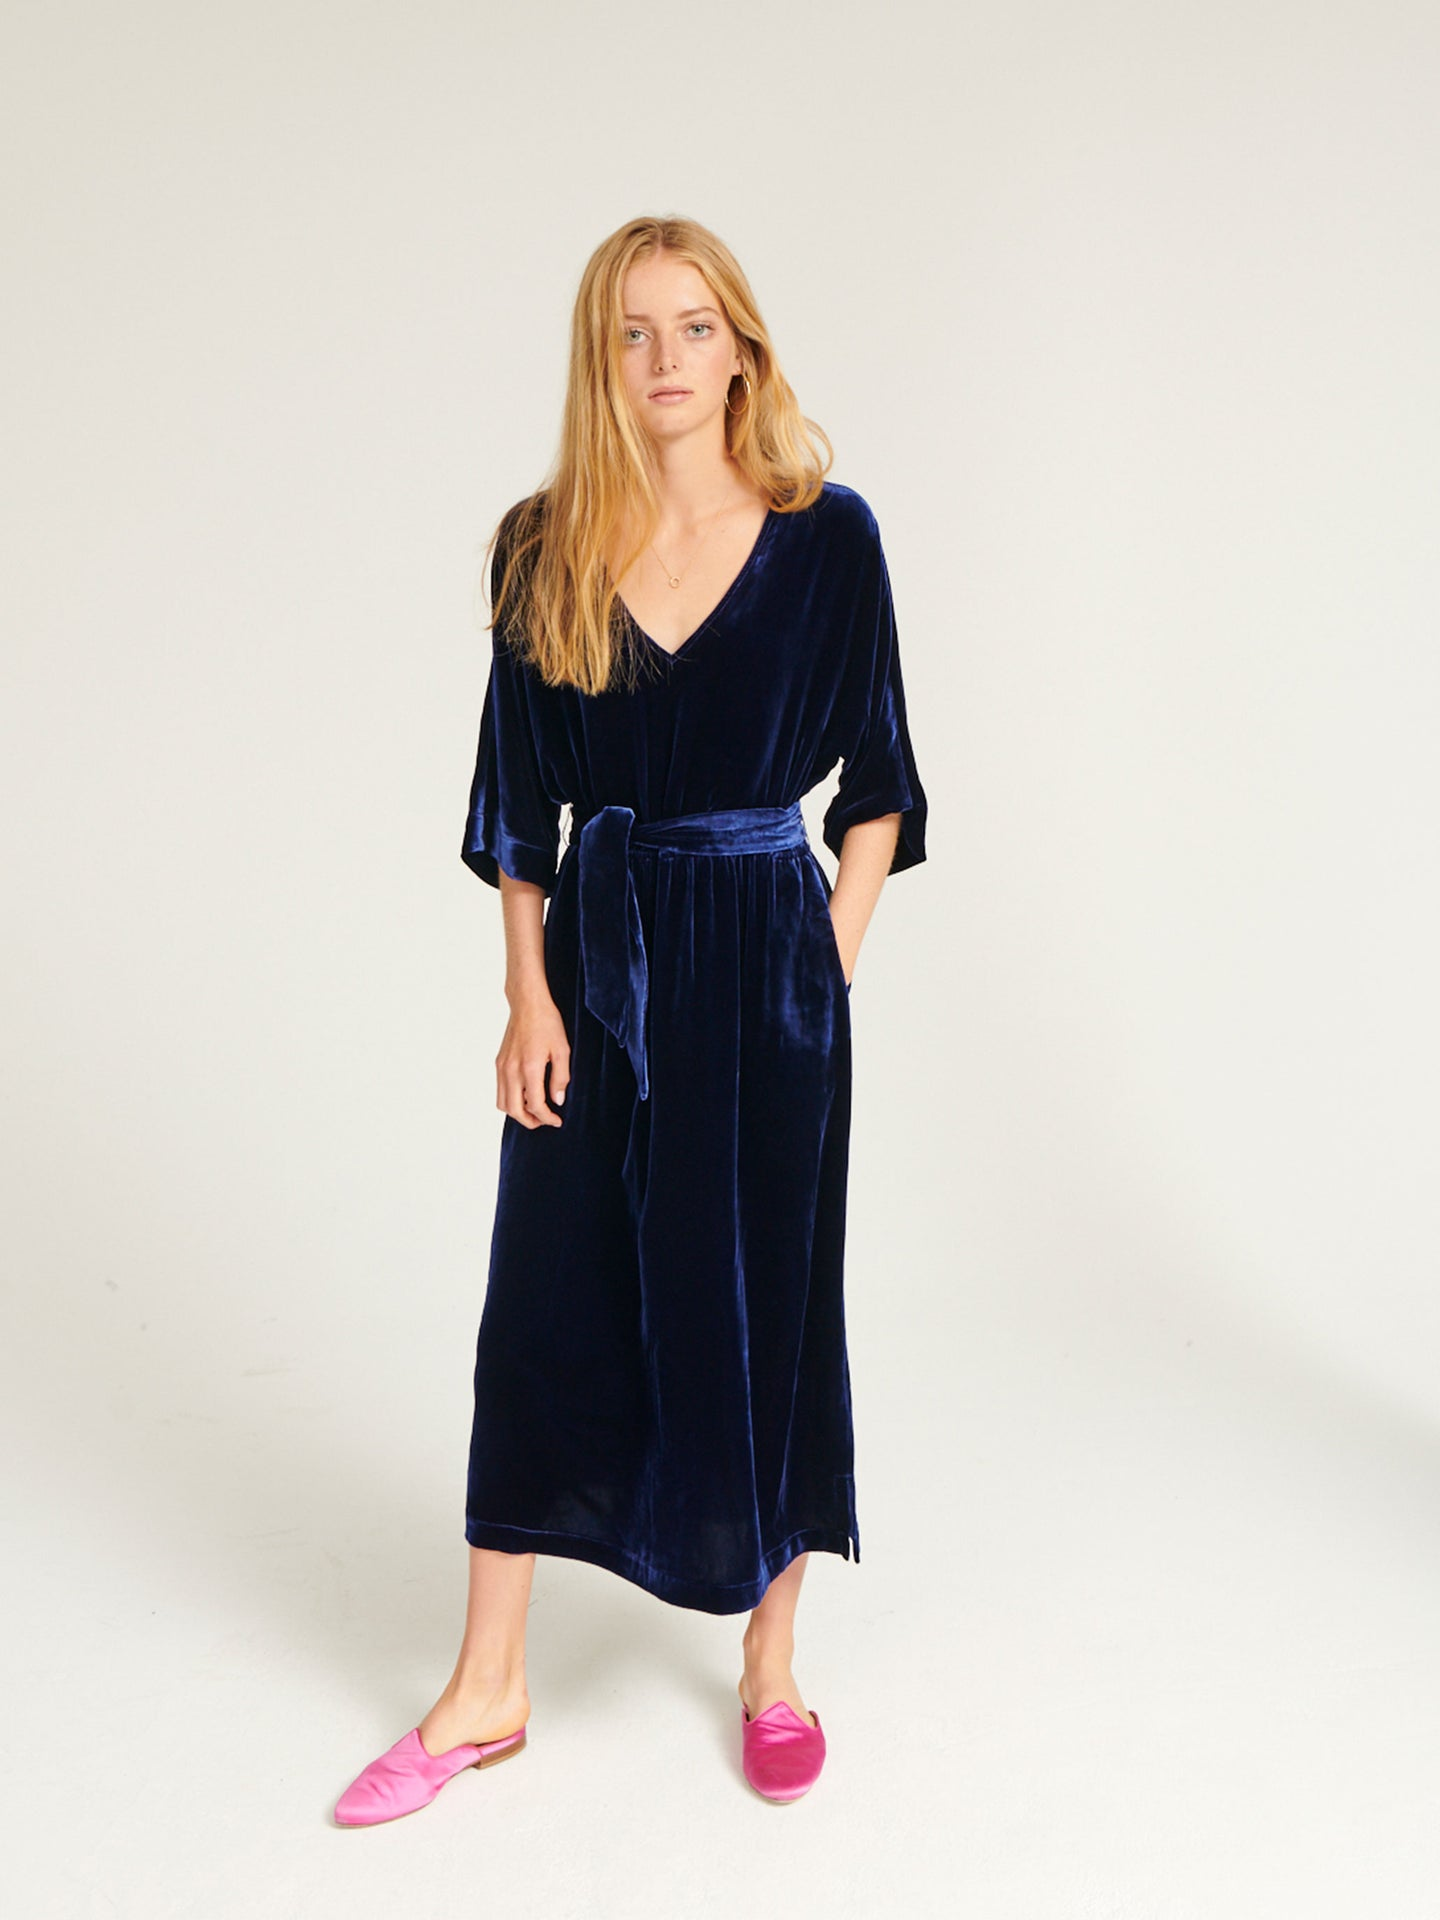 Zaza velvet v neck dress